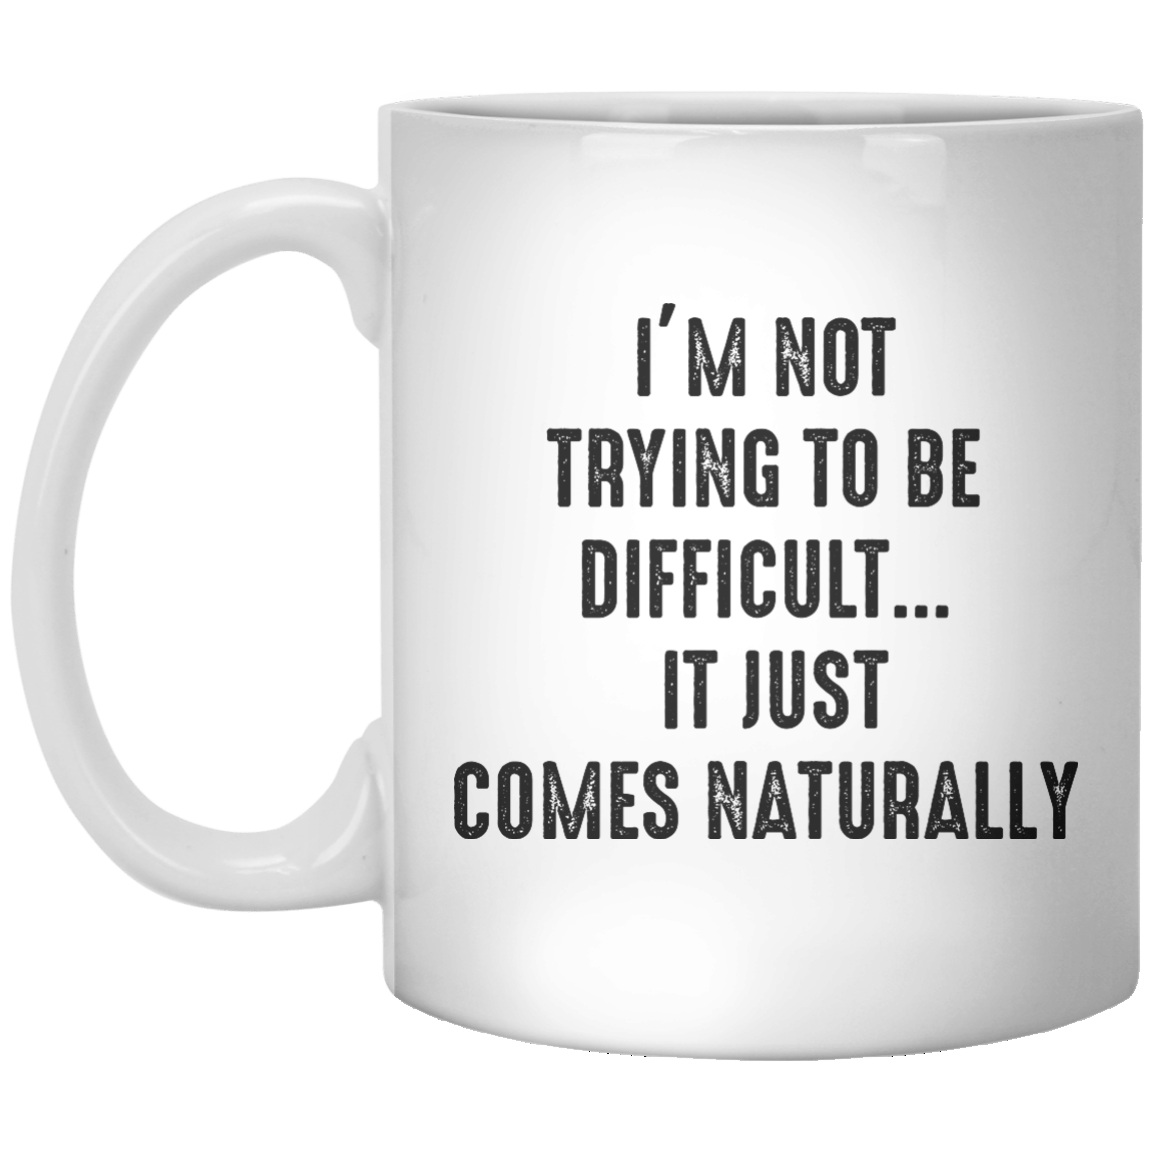 I'm Not Trying to Be Difficult It Just Comes Naturally MUG - Shirtoopia